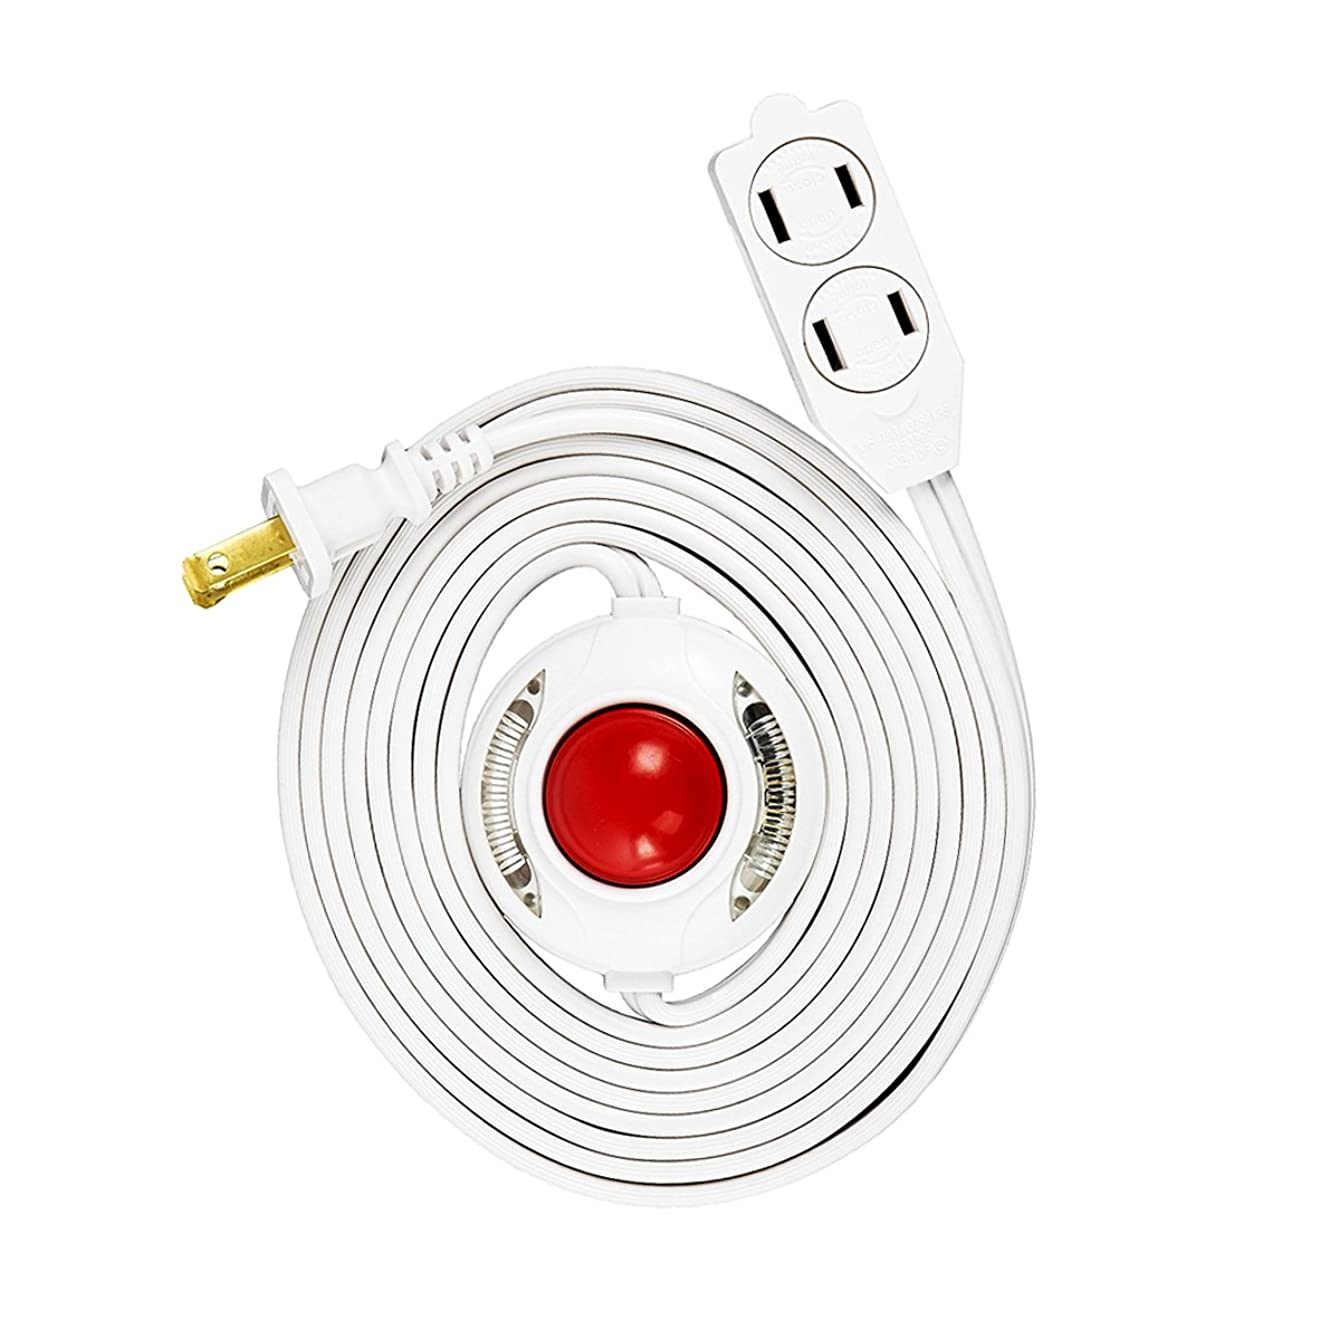 Uninex 9 Ft 3 Outlet Lighted Foot Switch Extension Cord Power Strip with Safety Covers Lamp Christmas UL